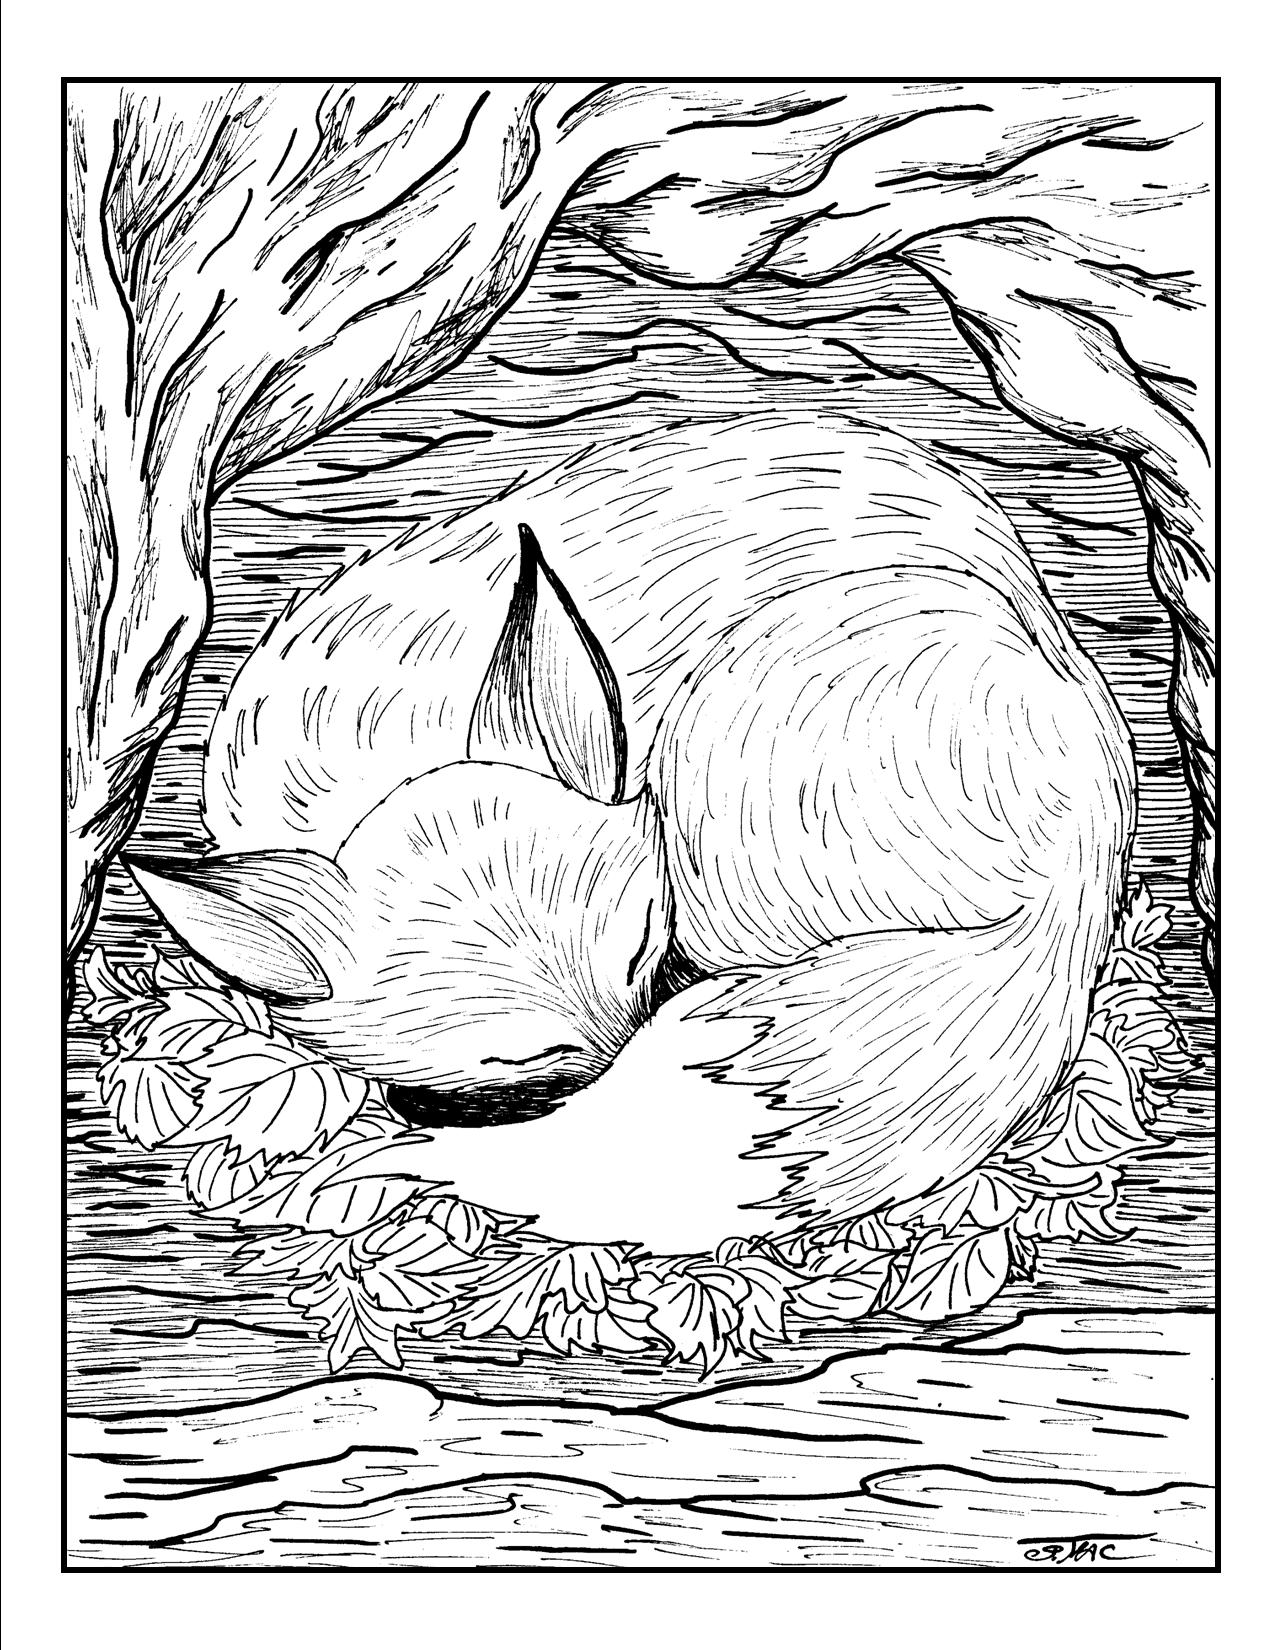 free printable coloring pages for adults free adult coloring pages smac39s place to be printable pages coloring for adults free